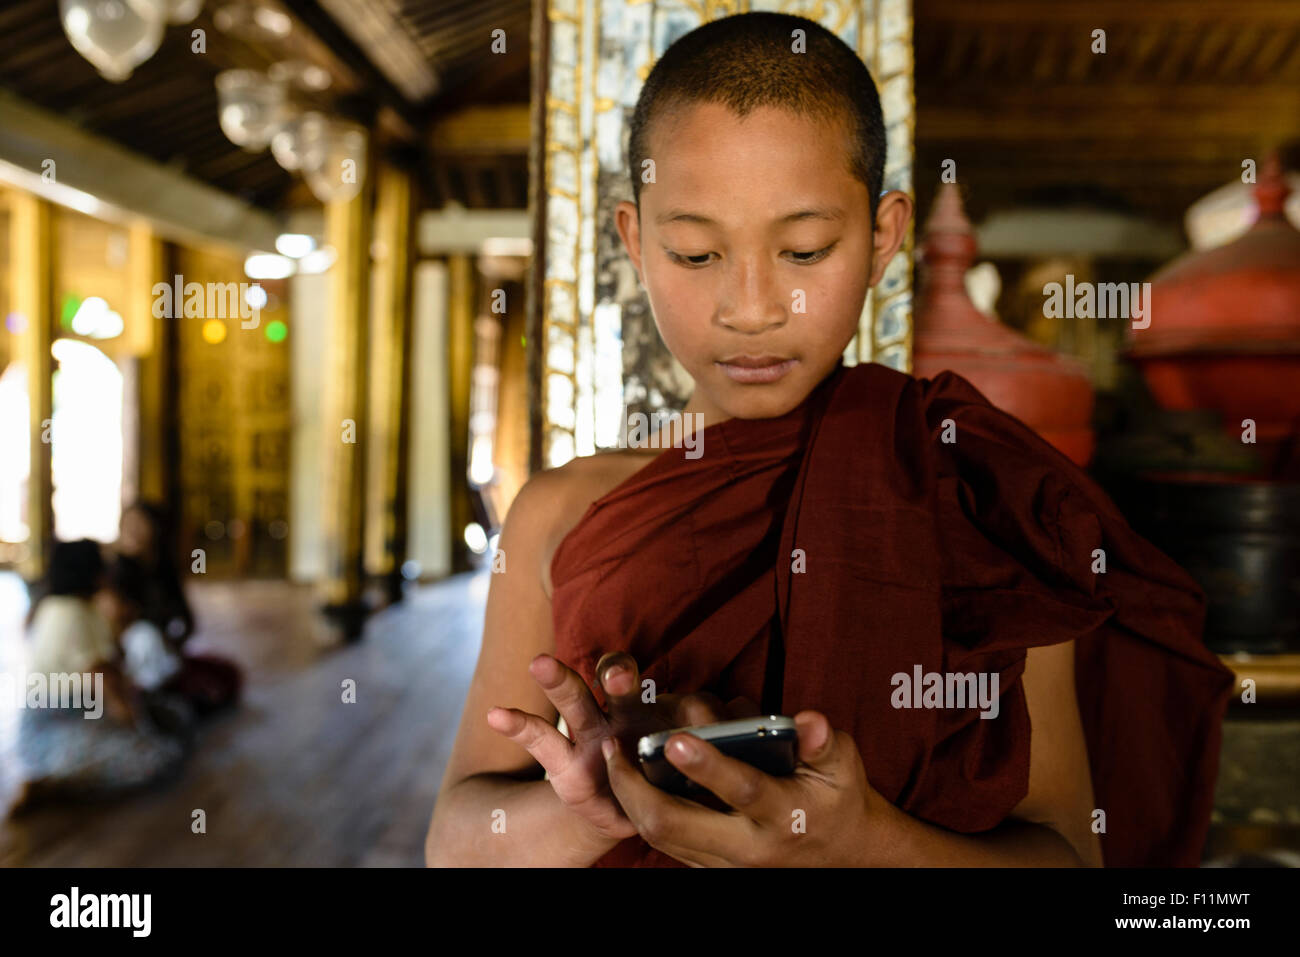 Asian monk-in-training using cell phone indoors - Stock Image